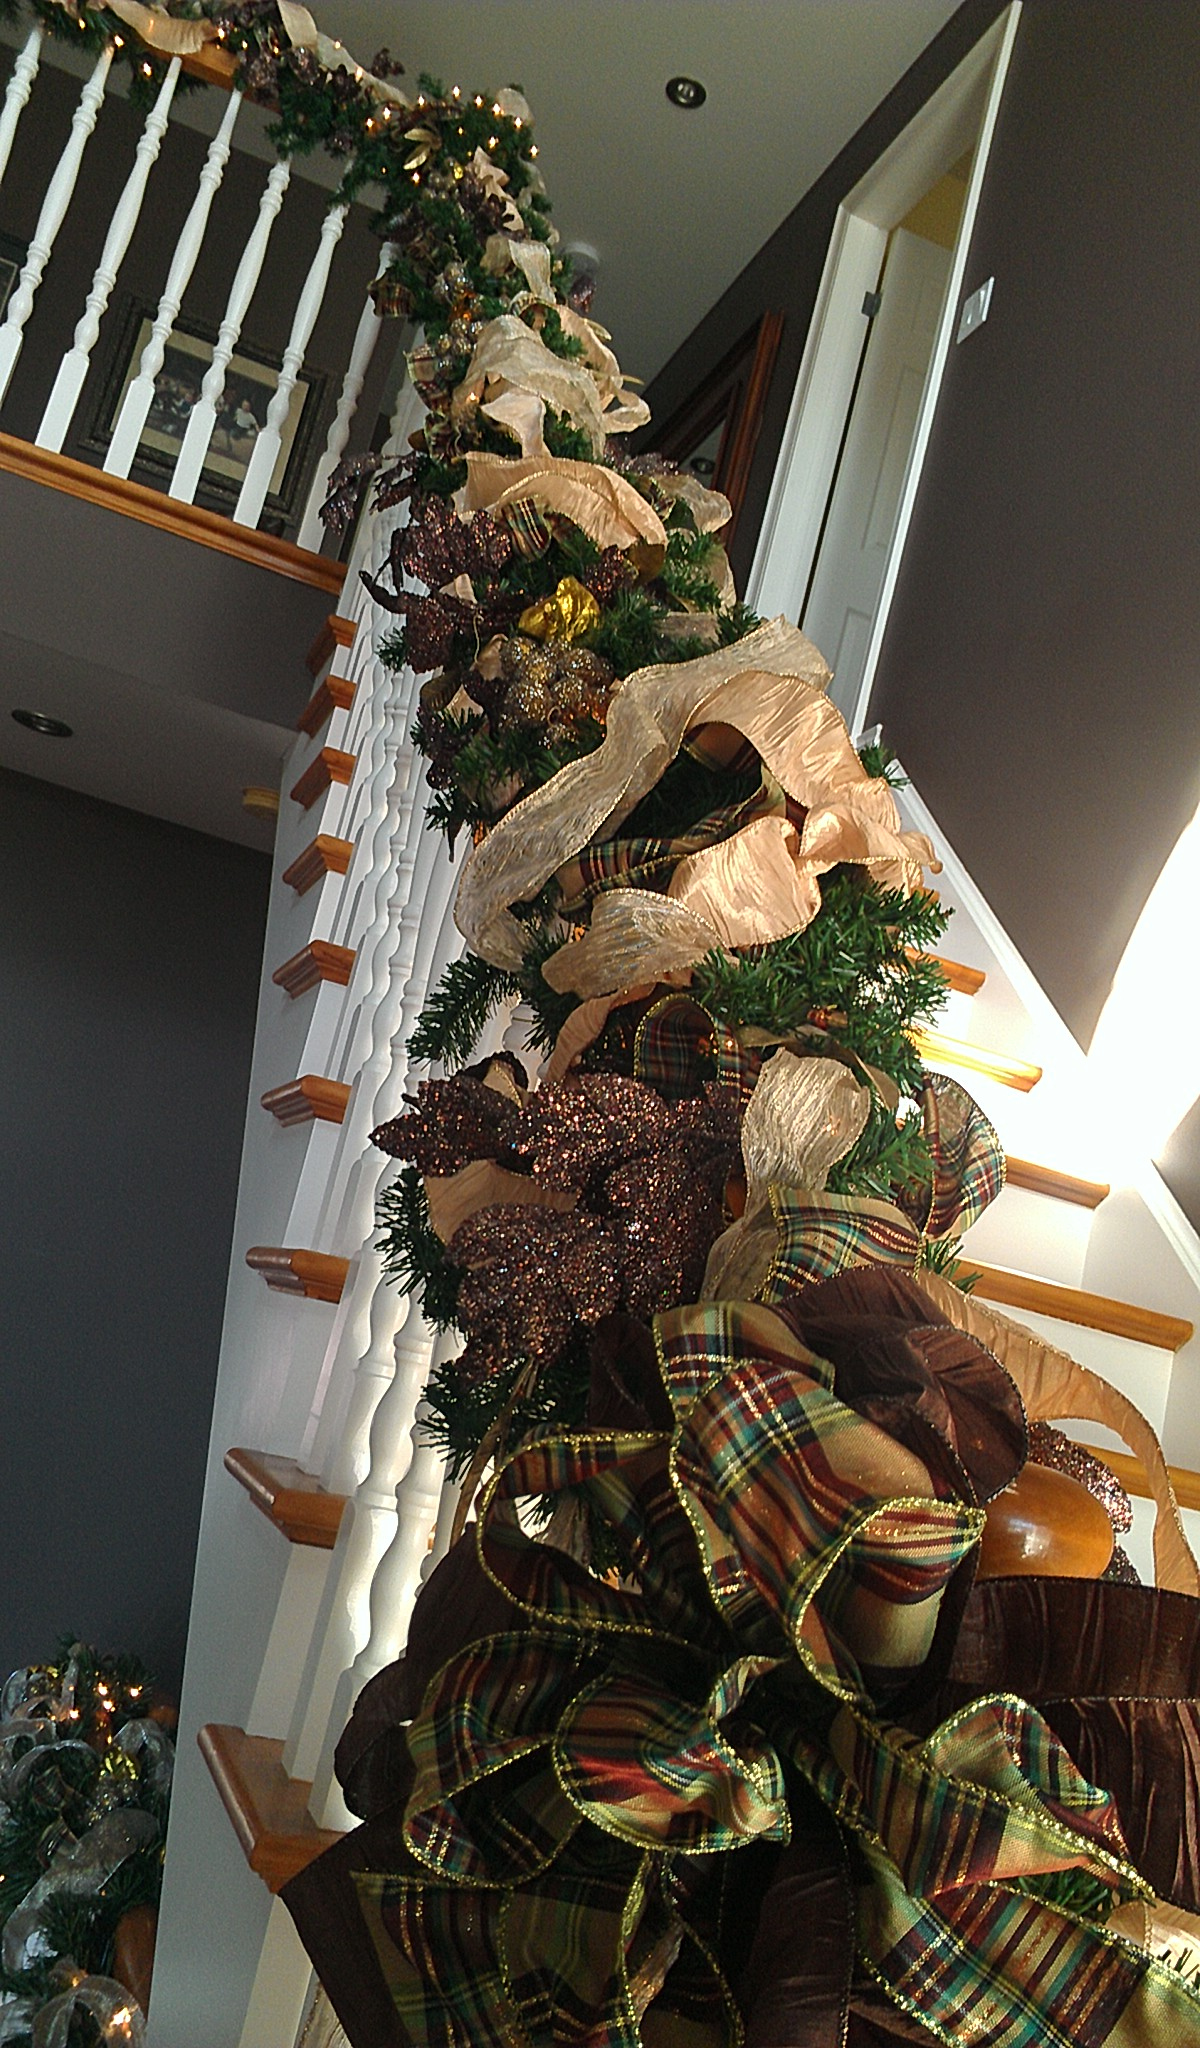 A banister ready for Christmas!